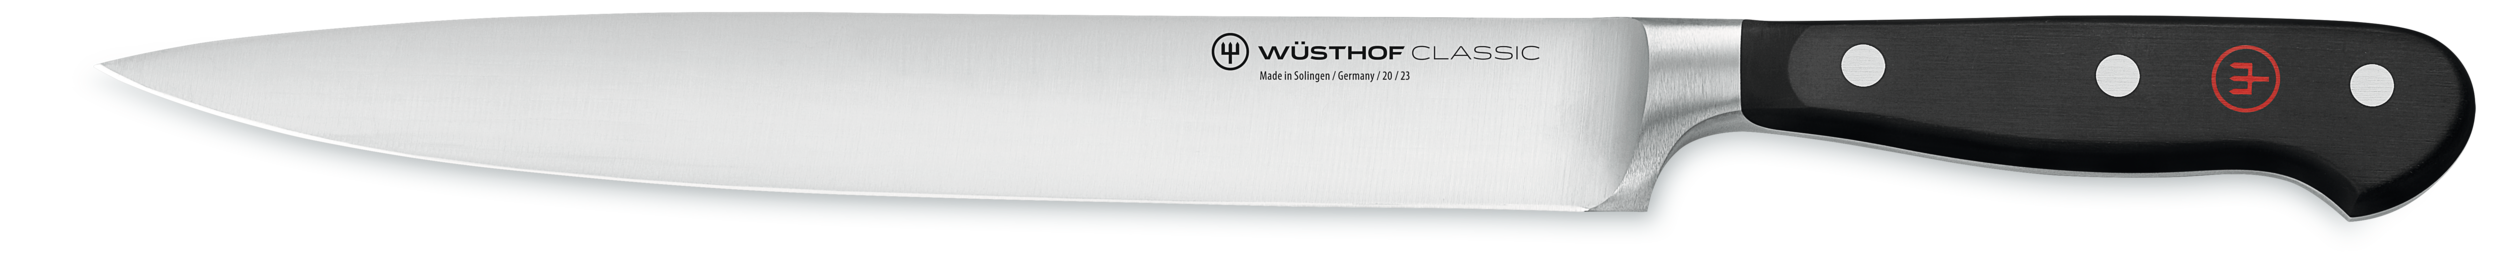 New Wüsthof Classic Carving Knife 23cm 1040100723